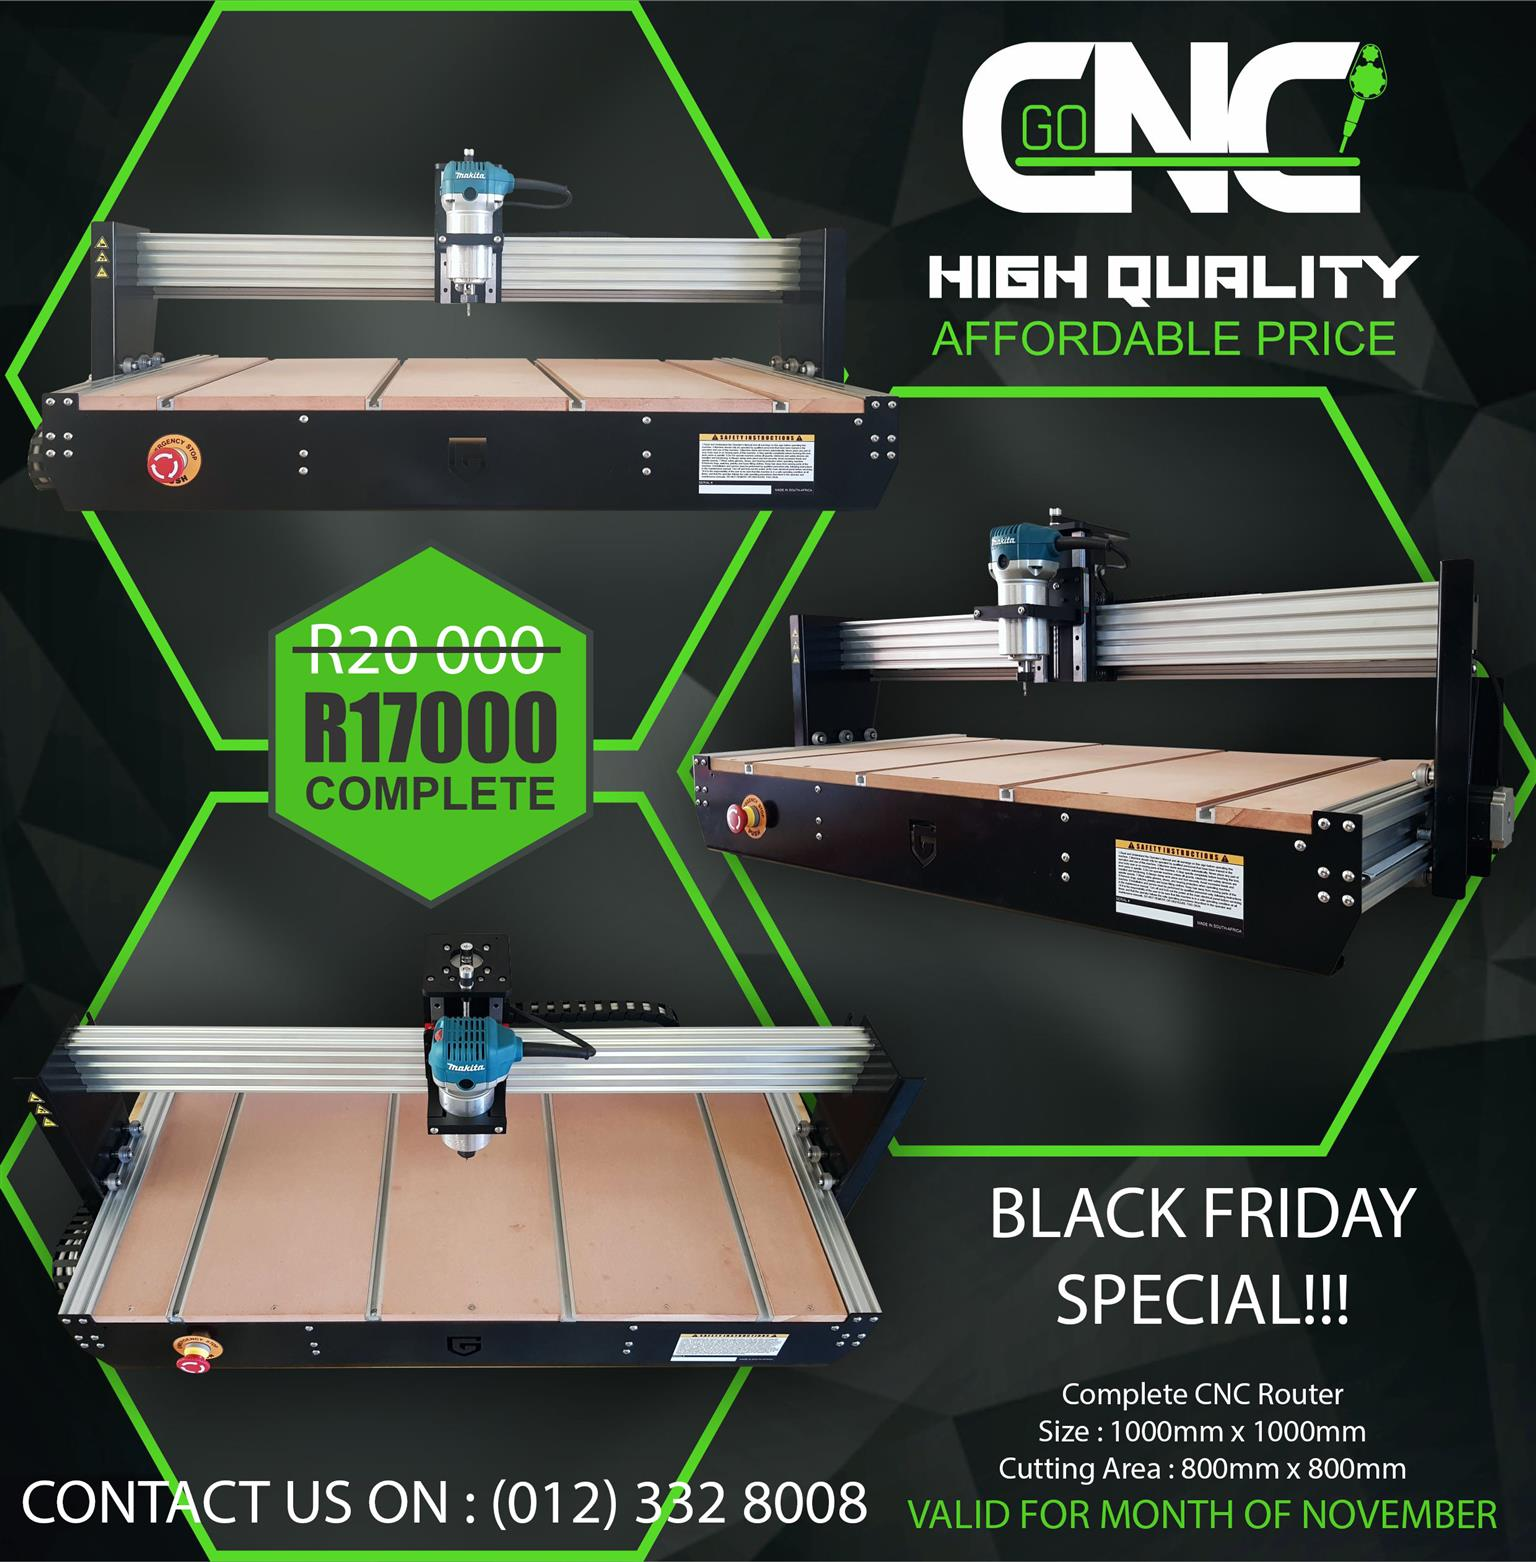 CNC ROUTER BLACK FRIDAY SPECIAL